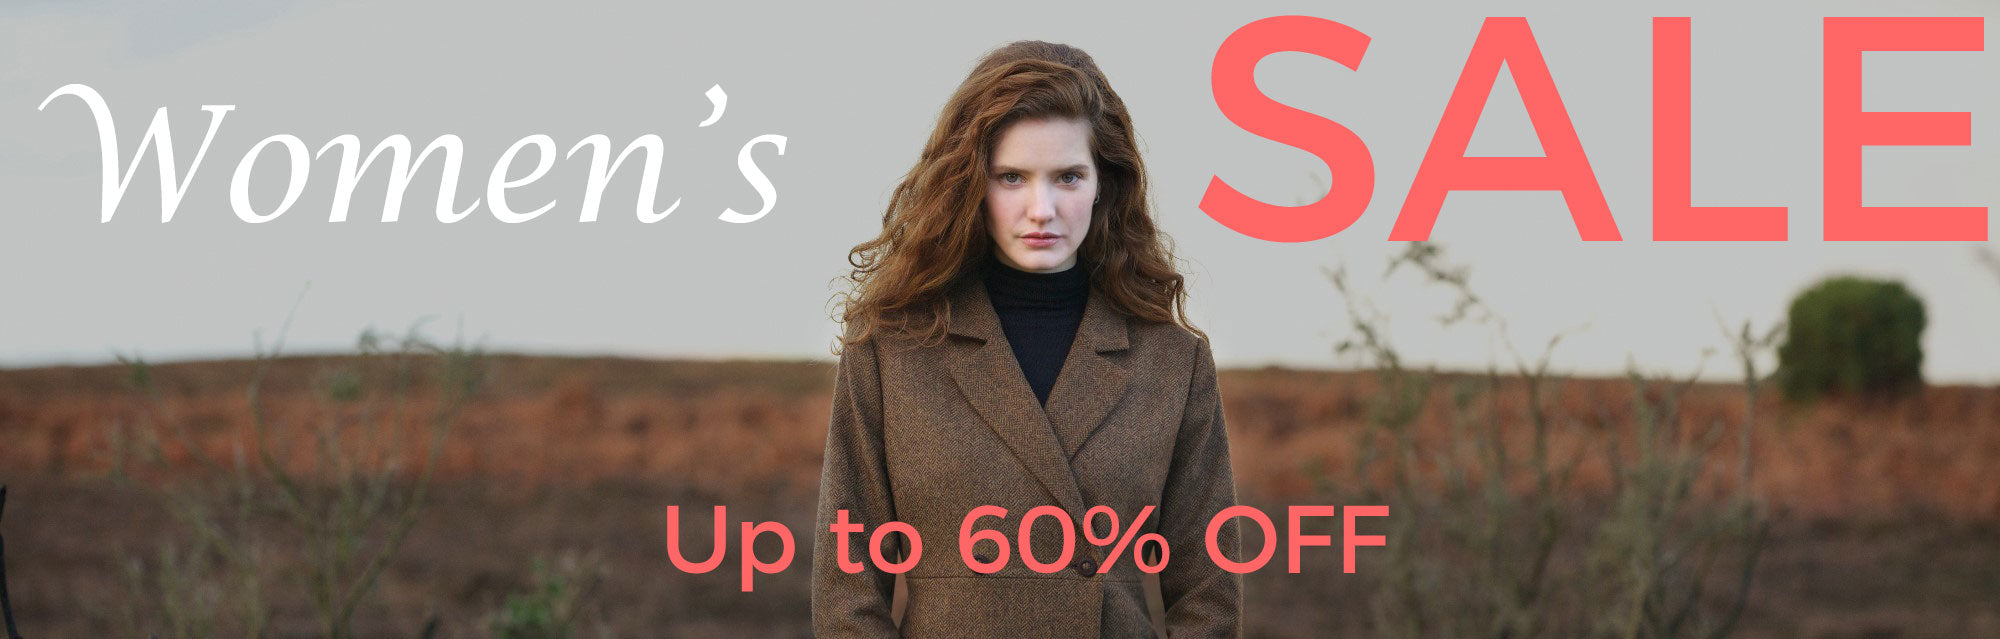 HOLLANDS  women's country clothing sale up to 50% off bargains